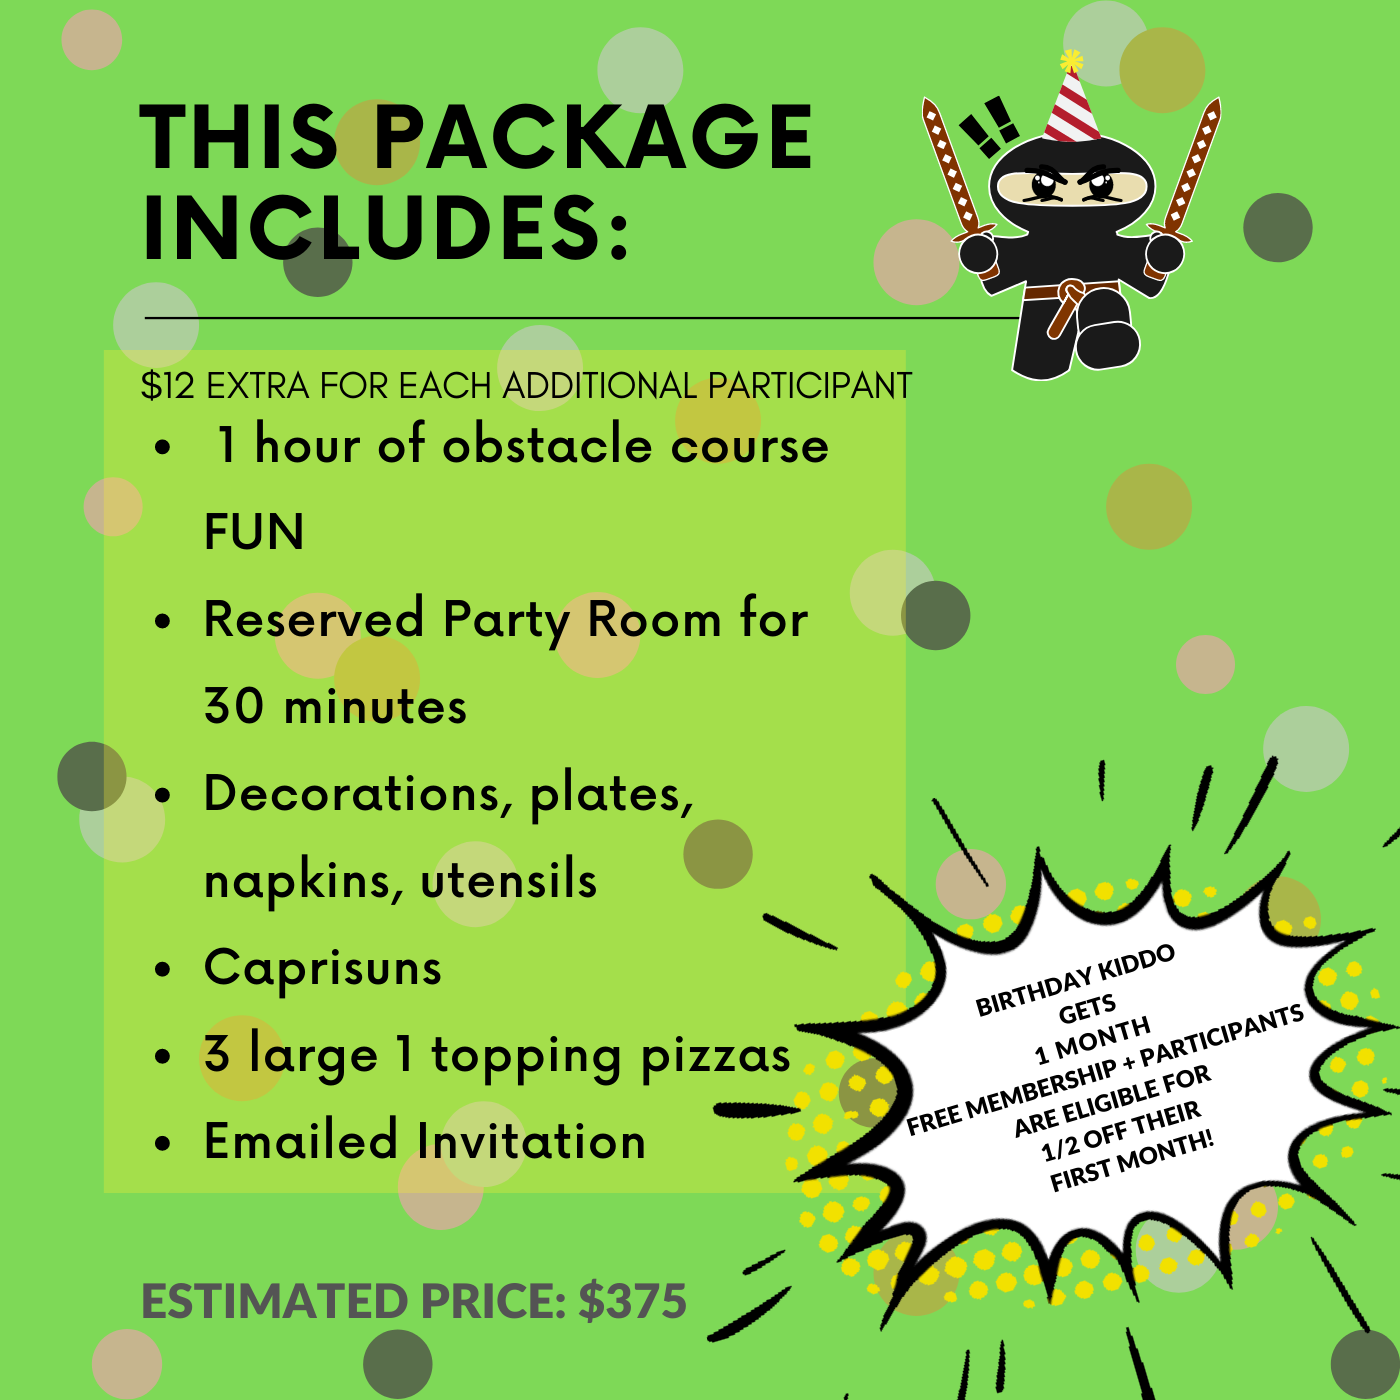 BIRTHDAY PACKAGE 3 - 15-20 PARTICIPANTS